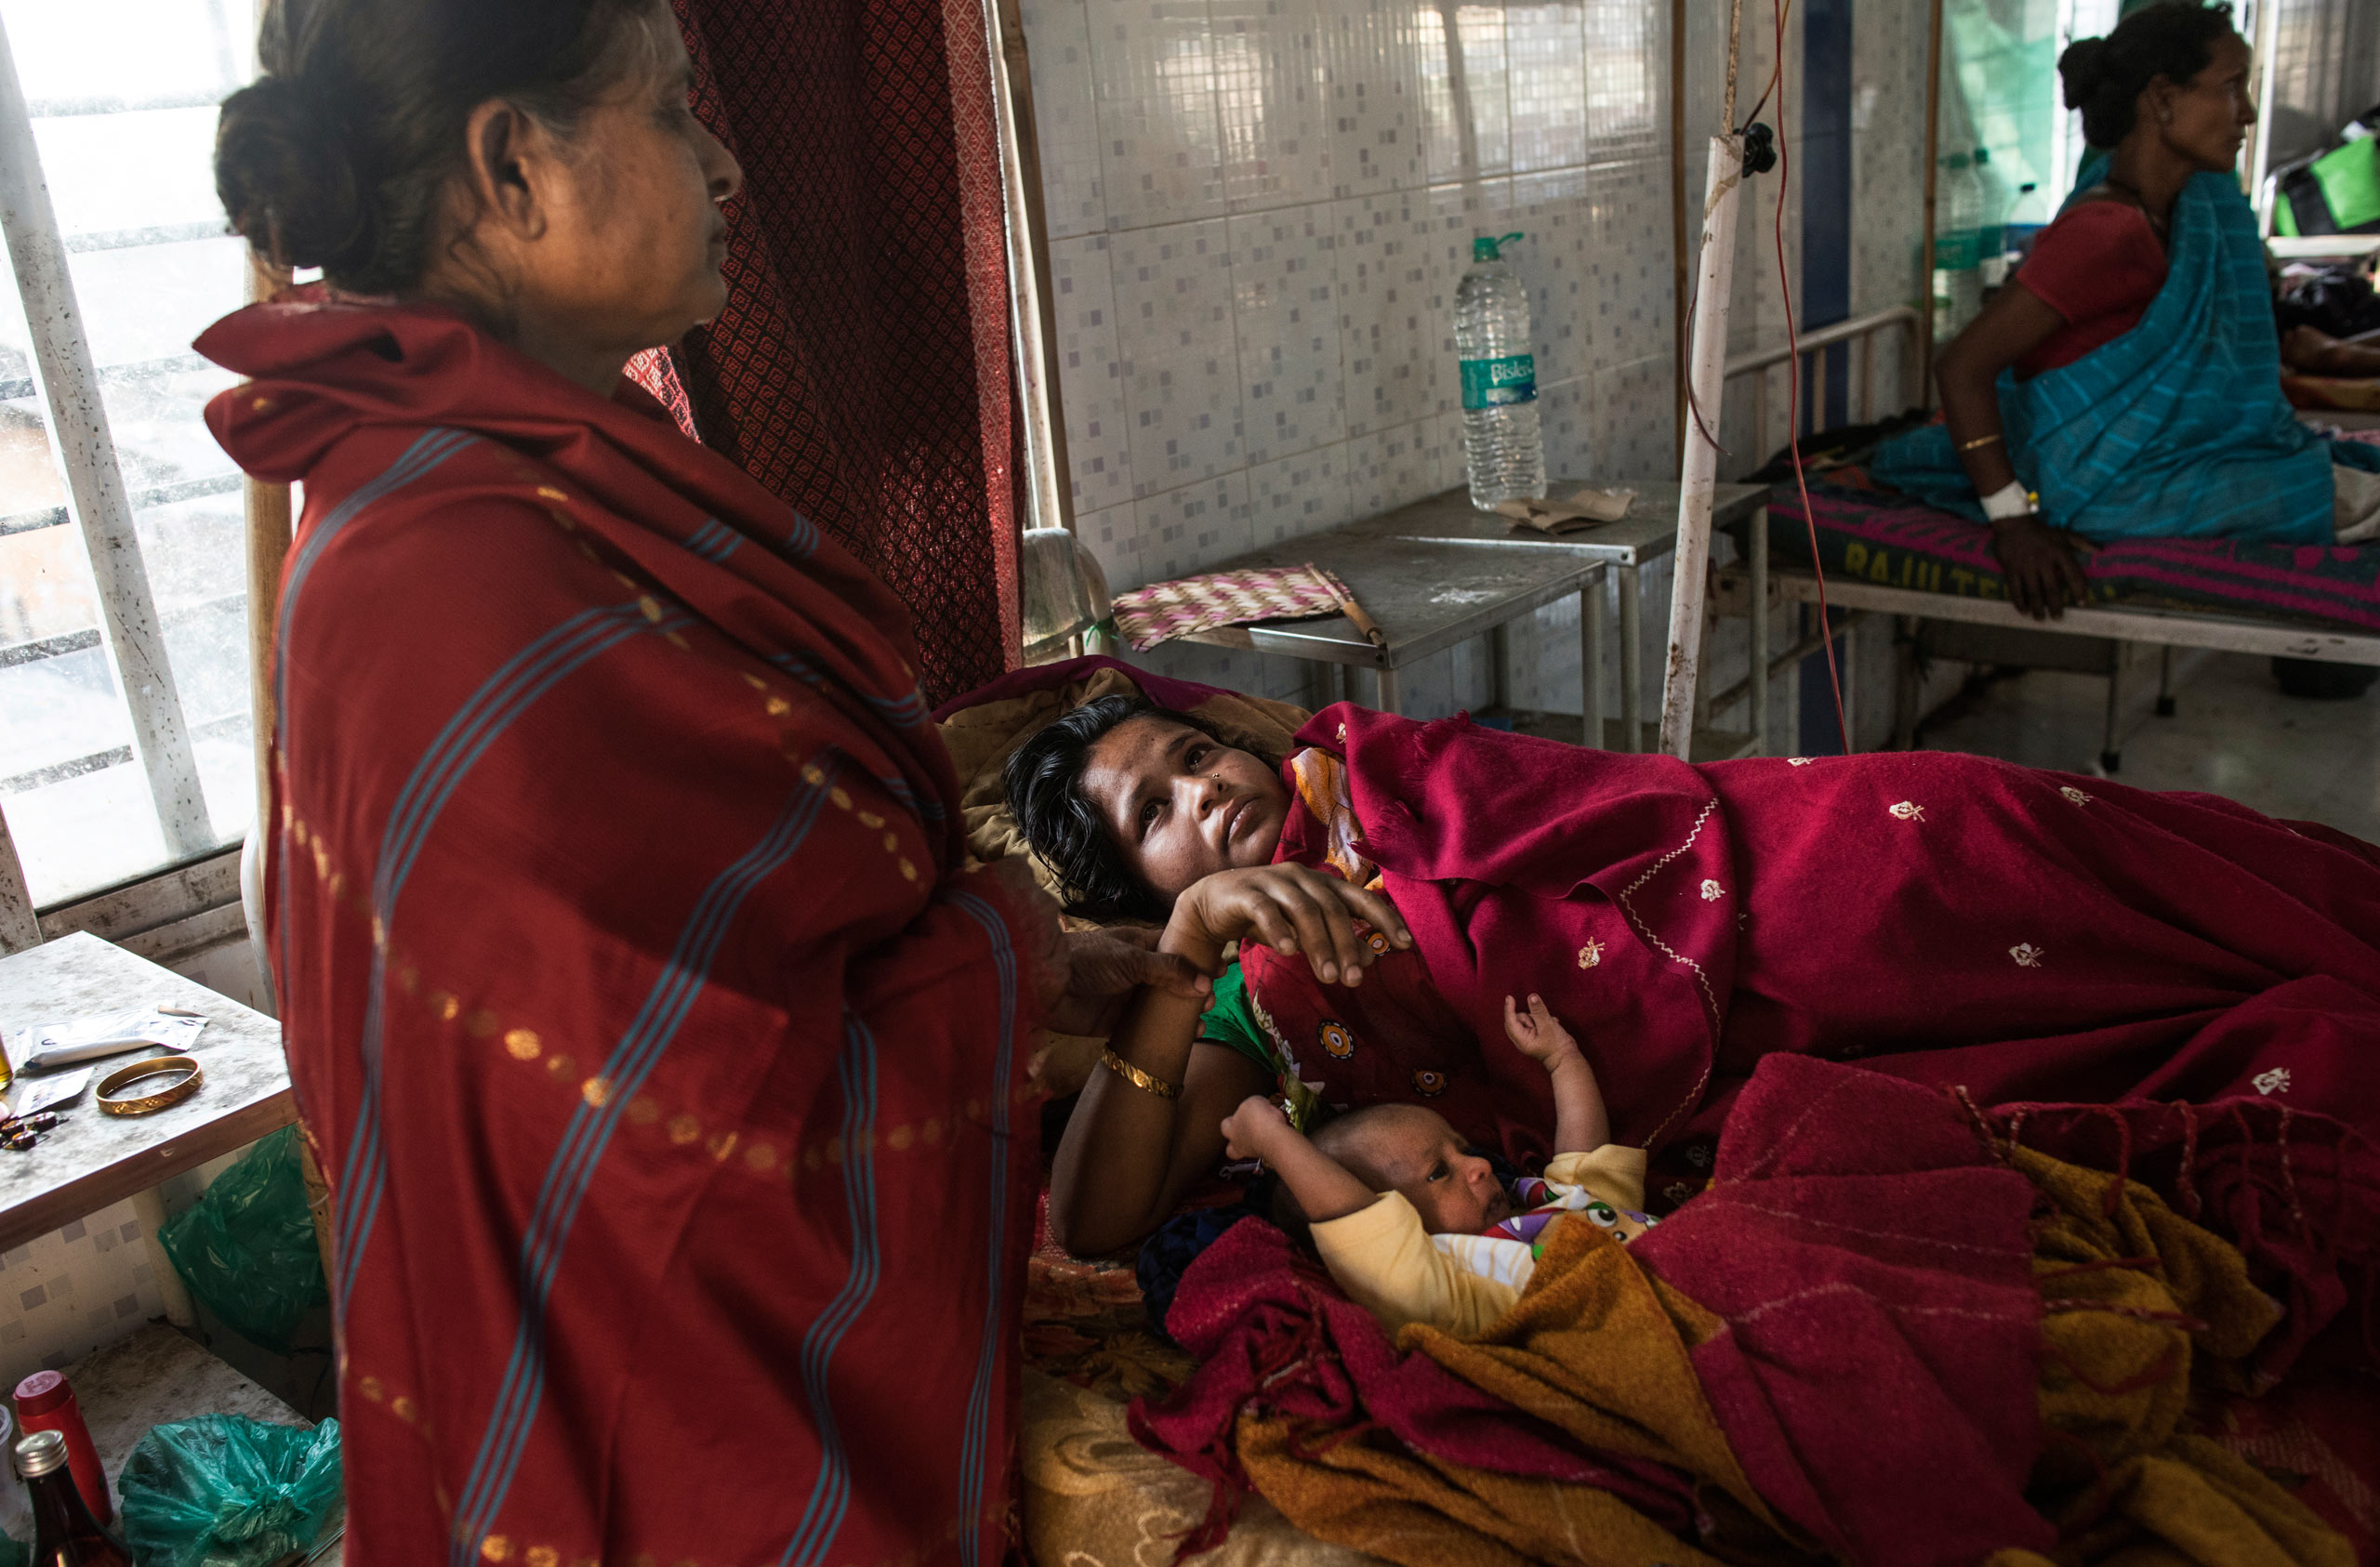 Nazreen Khatoon is comforted by her mother as she lies gravely ill, suffering from severe postpartum anemia, at the Tezpur Civil Hospital in Tezpur, Assam, India. April 2015. Khatoon delivered her son, Kashari Pam, three weeks prior, and returned to the hospital two weeks after delivery when her condition worsened. In dire need of both blood and iron, she was not receiving either from the Tezpur Hospital. She was eventually referred to a private hospital, where she was able to receive better care, but at a great expense to the family.